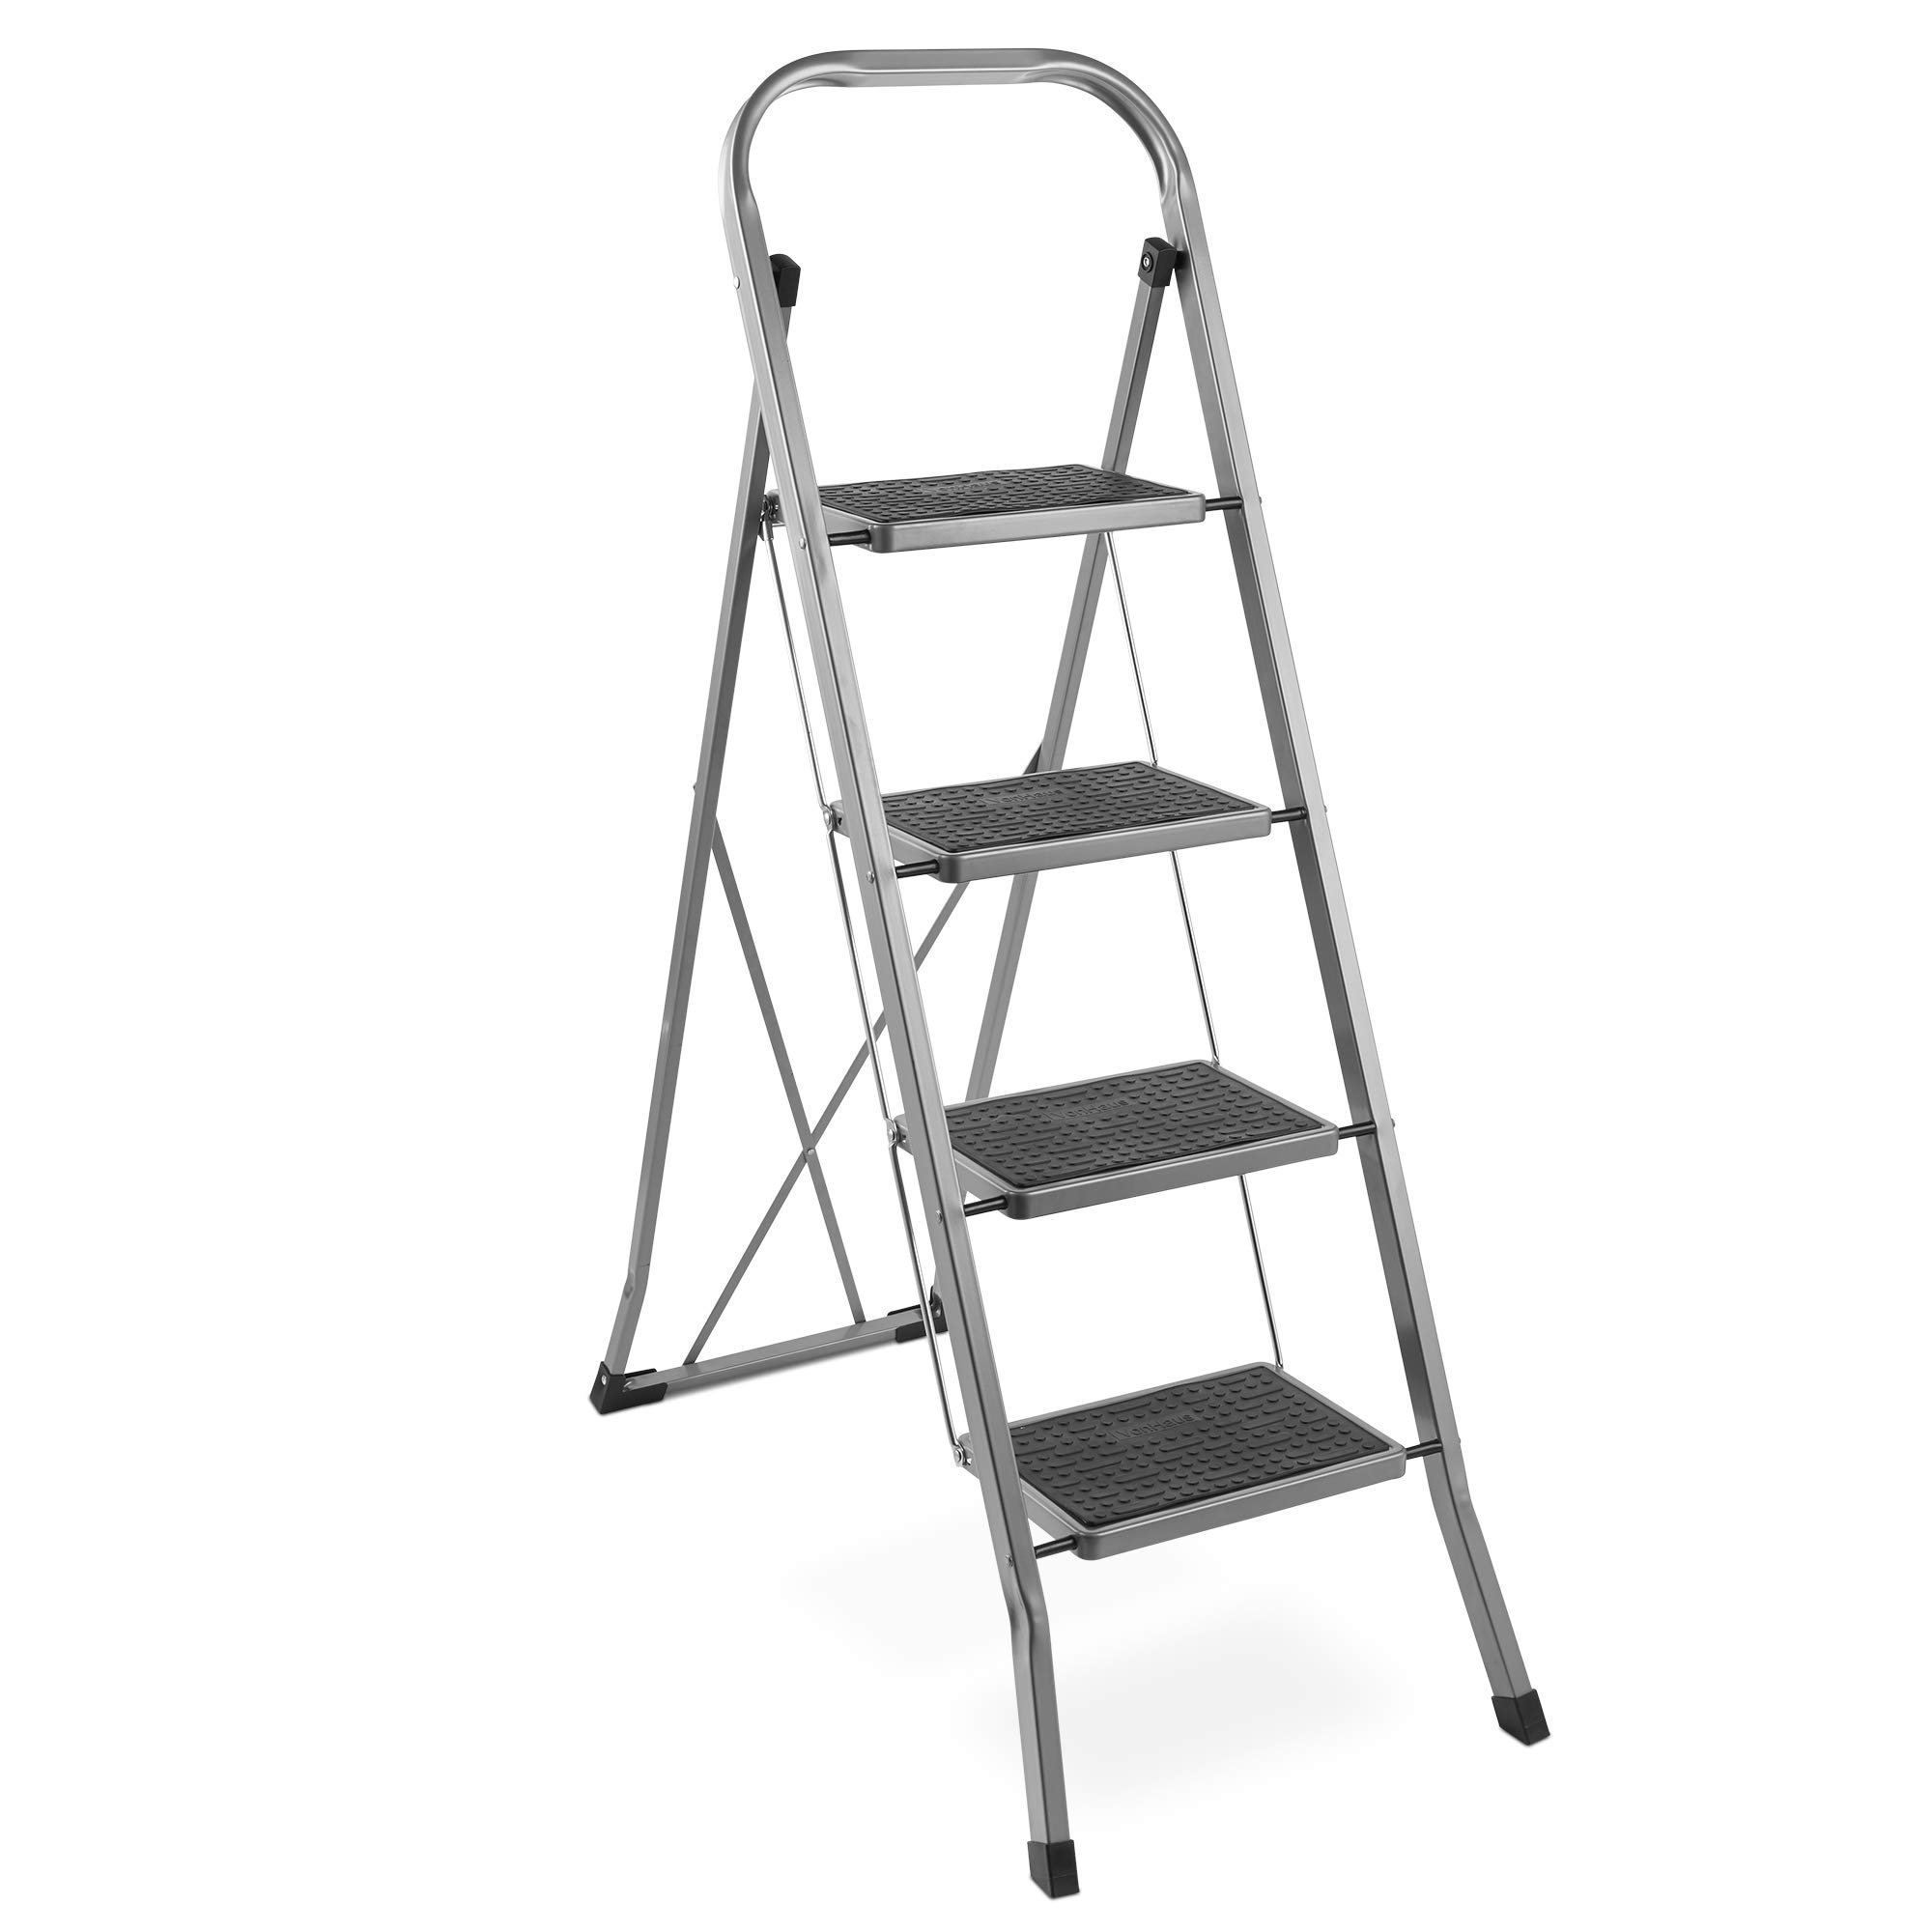 VonHaus Steel 4 Step Ladder Folding Portable Stool with 330lbs Capacity and Anti-Slip Feet - Lightweight and Sturdy by VonHaus